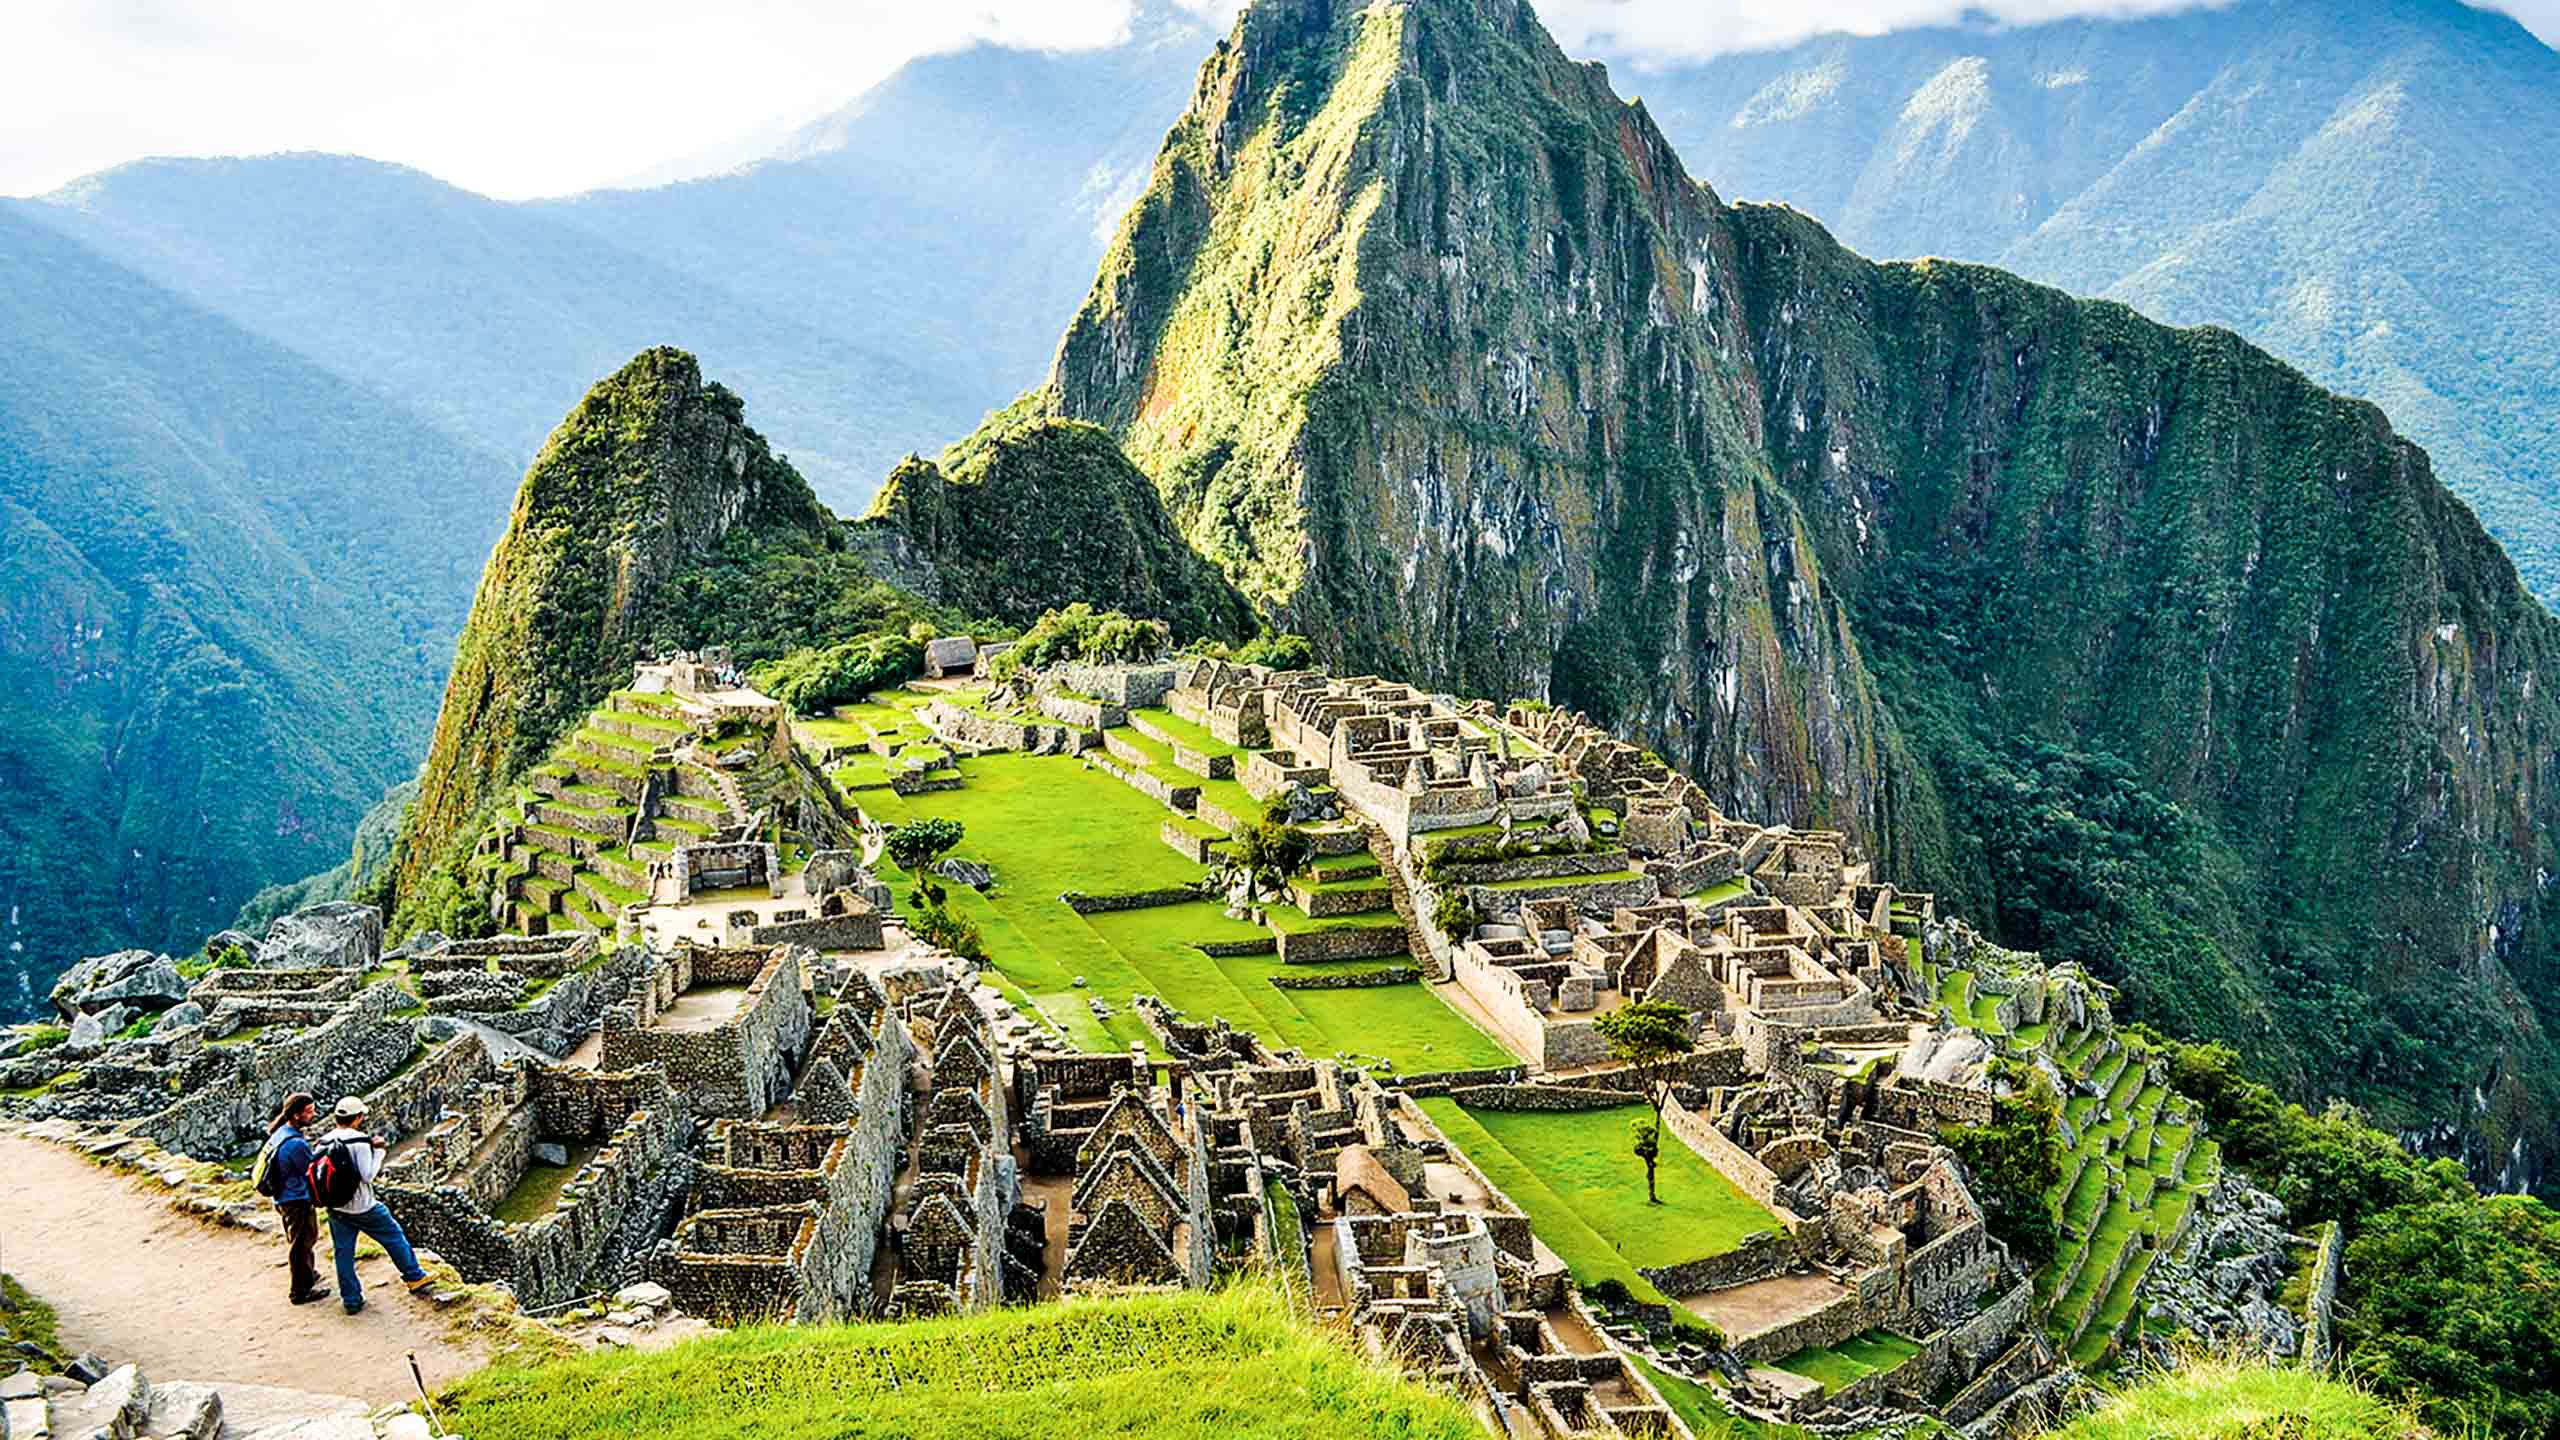 Hikers admire overlook view of Machu Picchu